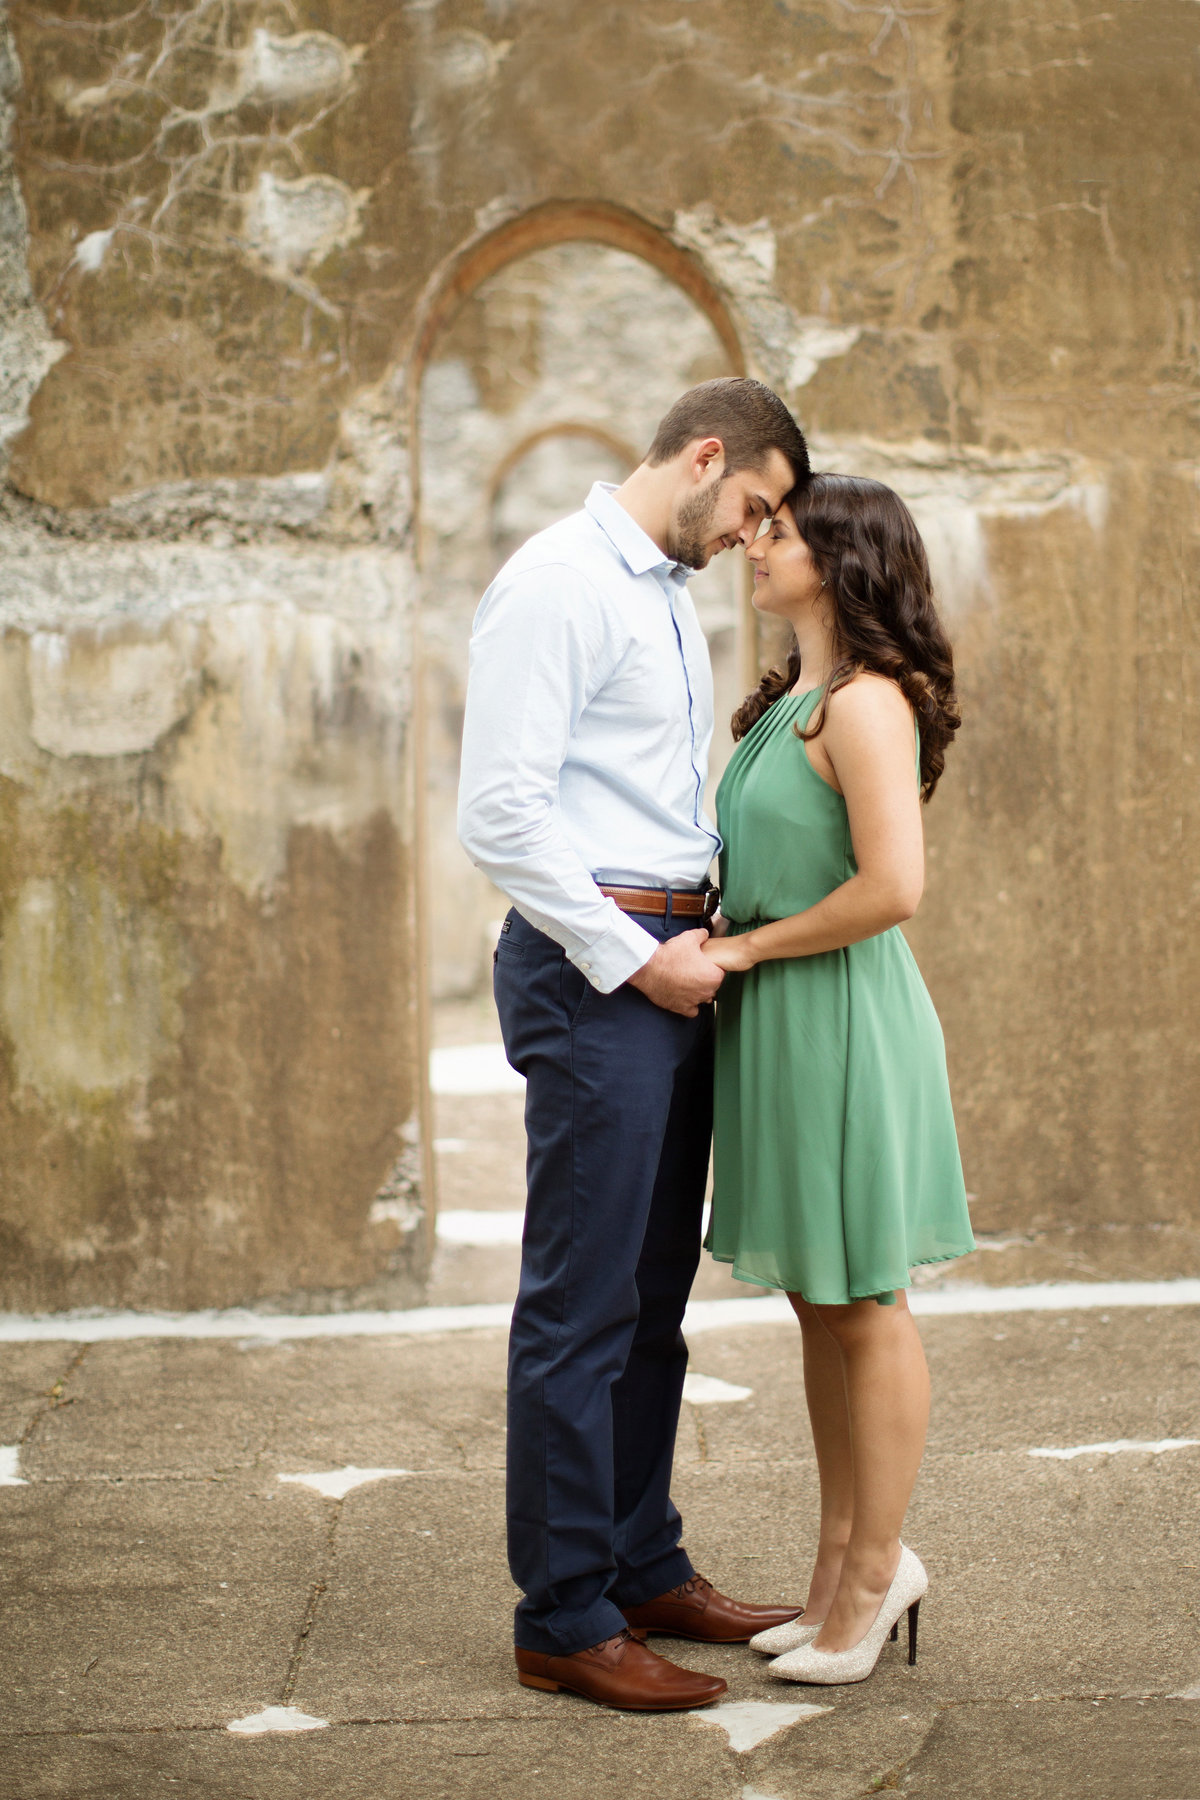 MICHELLE+REED-ENGAGEMENT PHOTOS-002